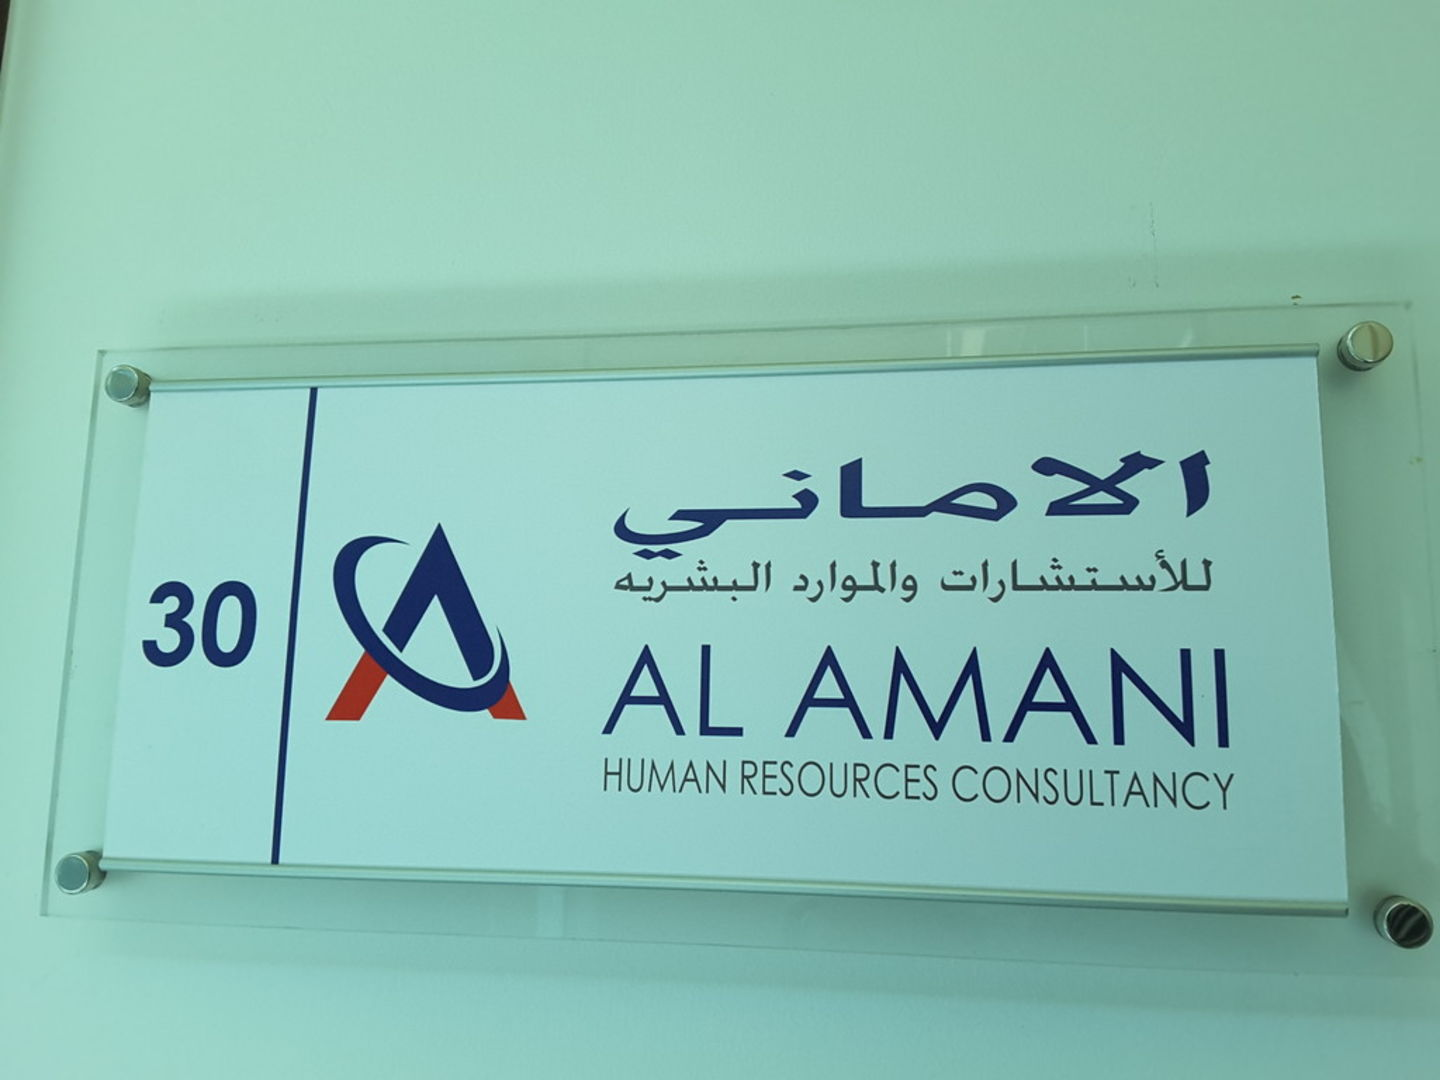 HiDubai-business-al-amani-human-resources-consultancy-b2b-services-human-resource-management-al-karama-dubai-2